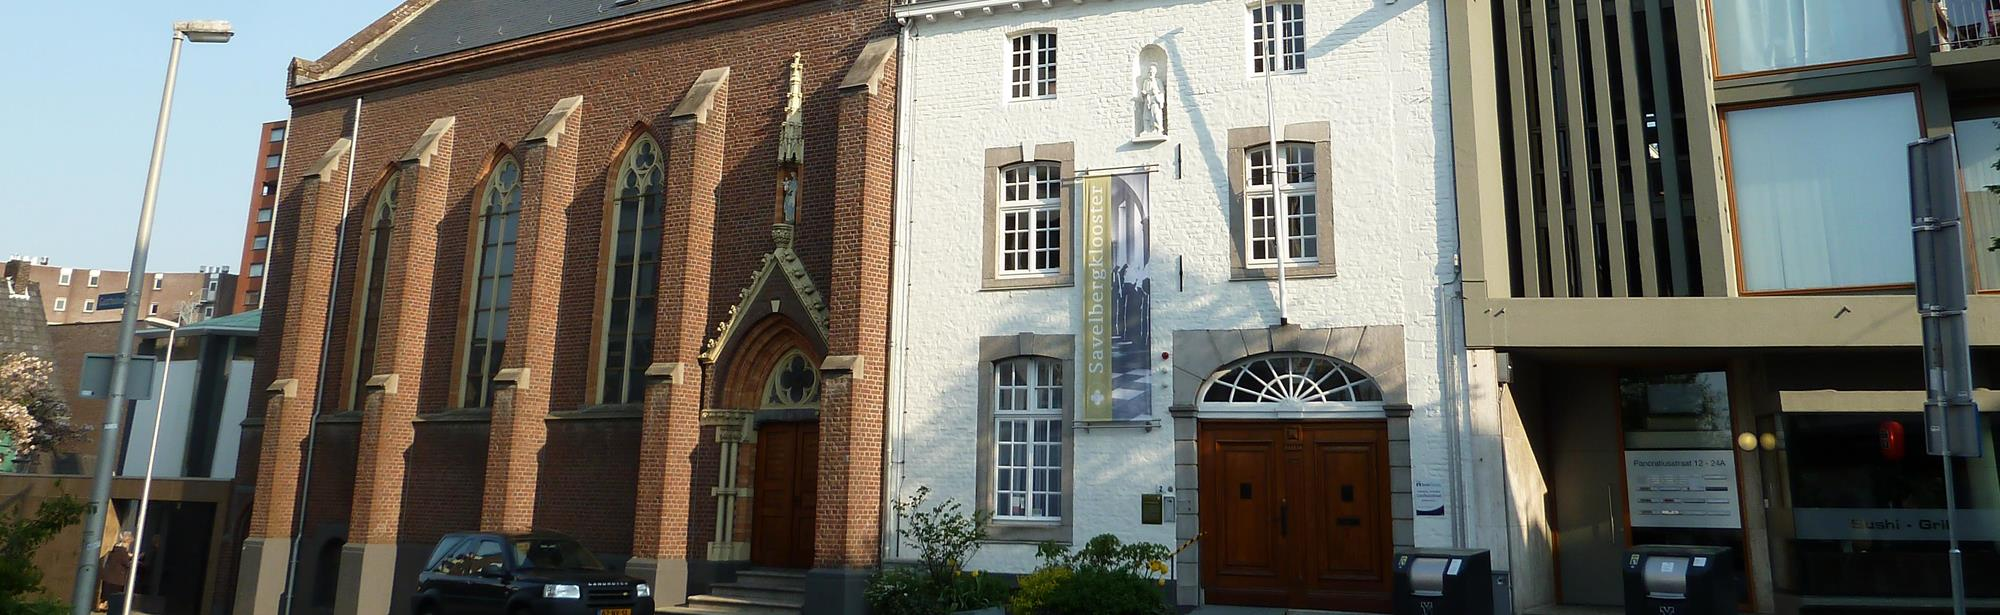 Savelbergklooster